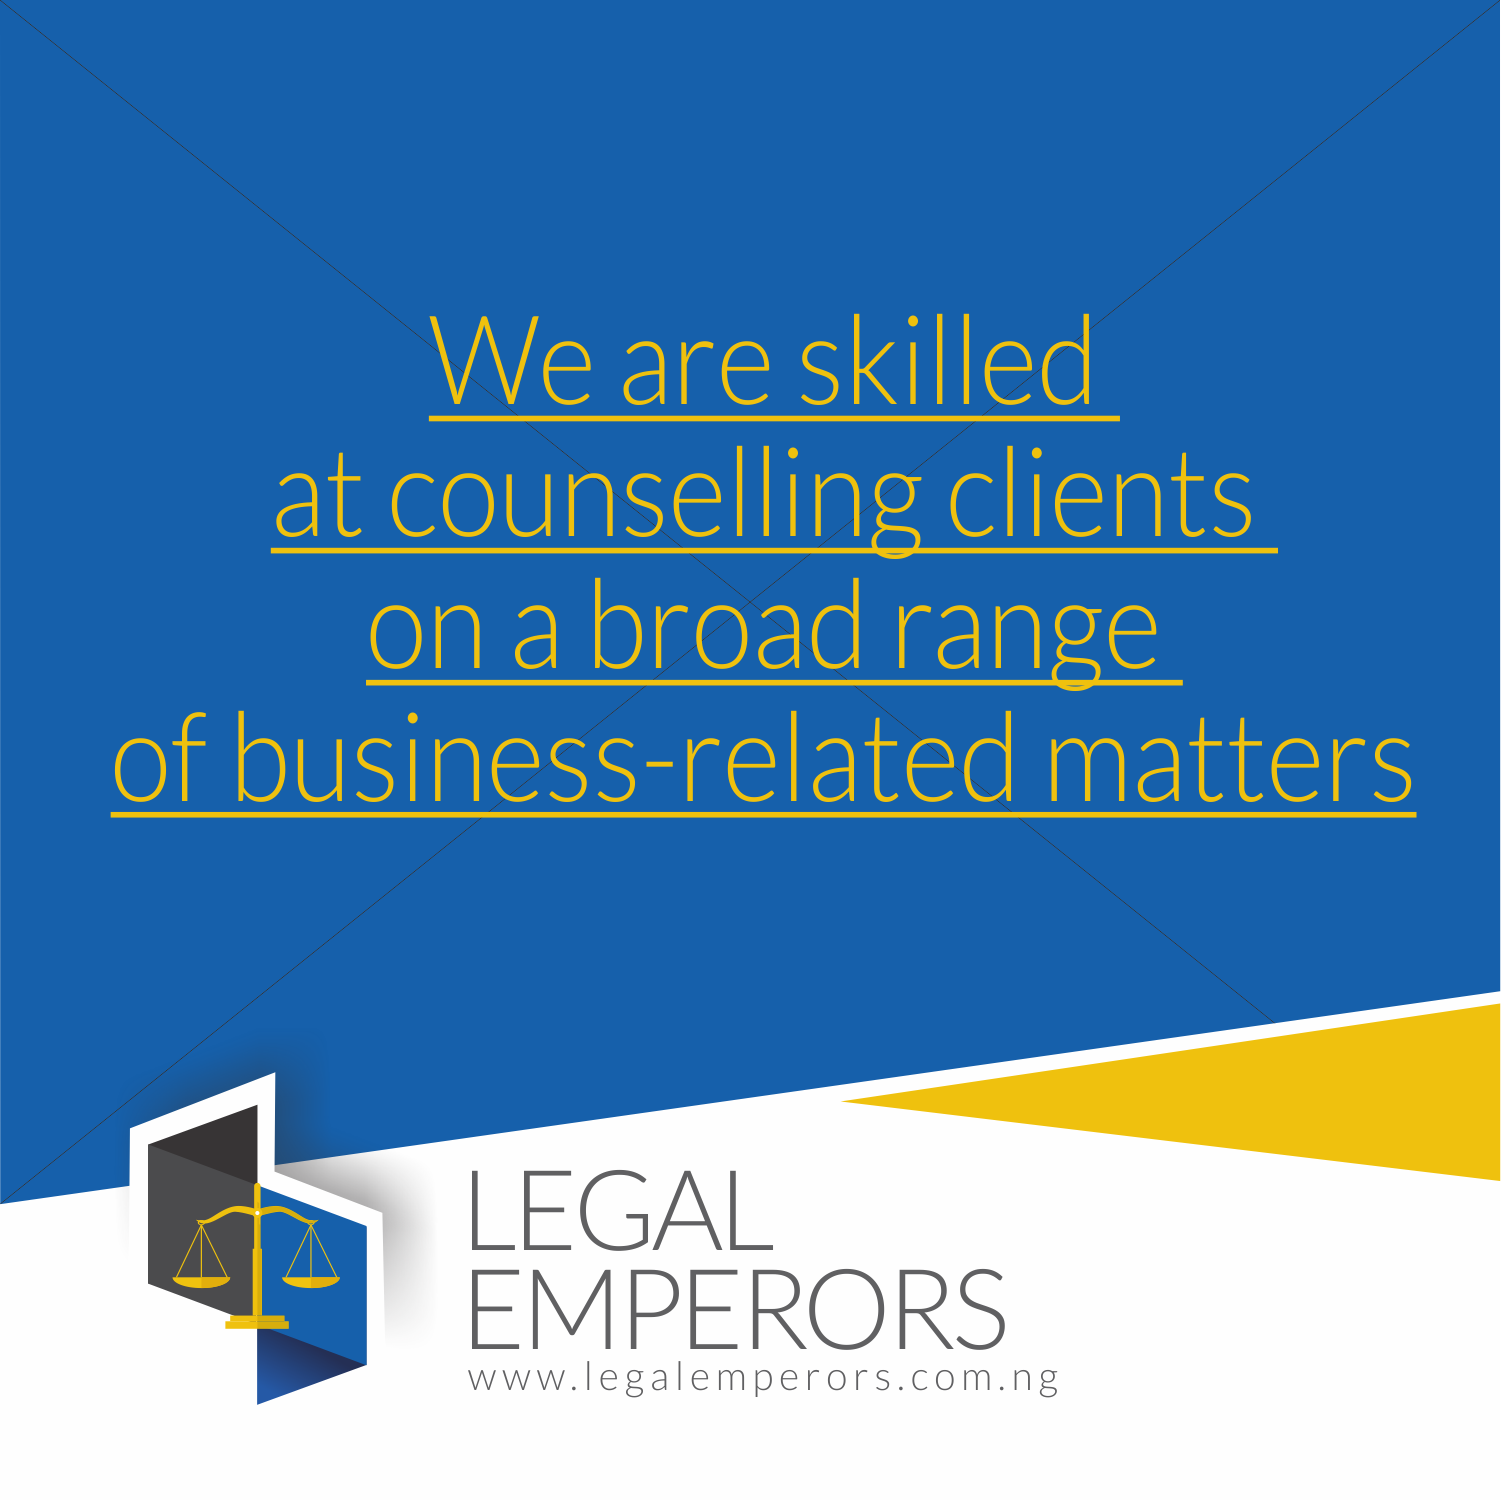 We are Skilled at Counselling Clients on a Broad Range of Business-Related Matters